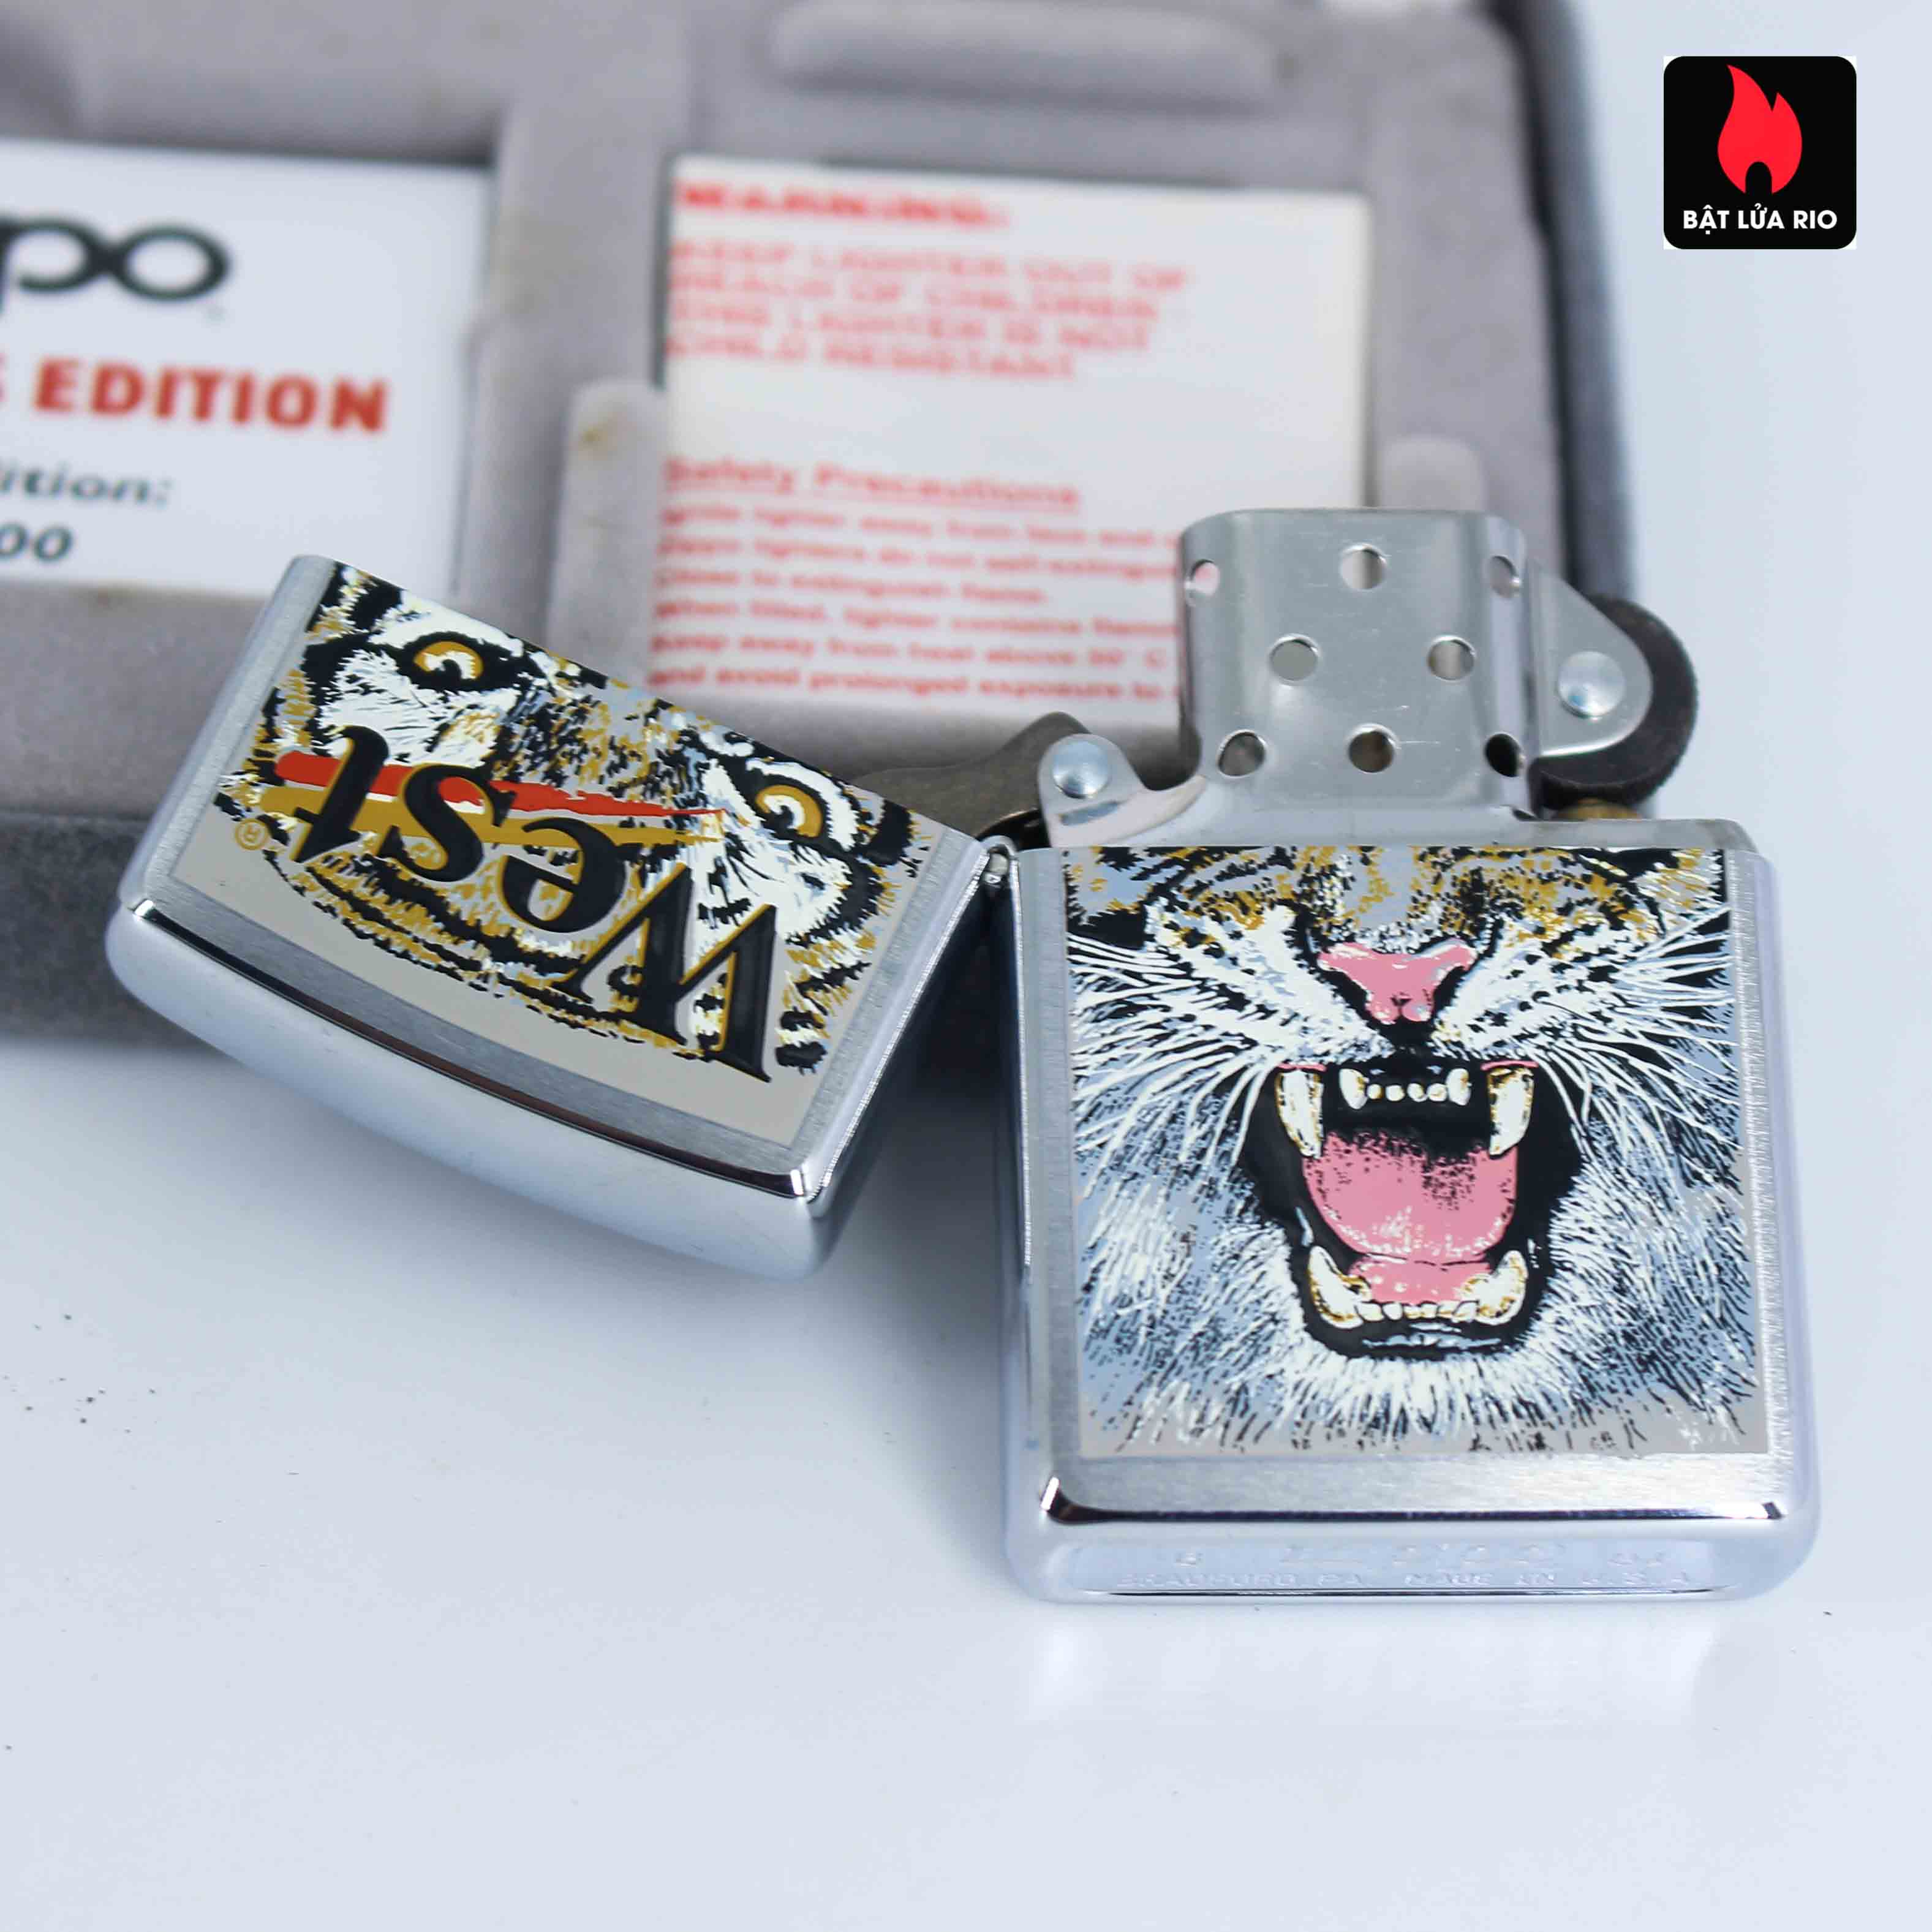 Zippo 2001 - Wild Lighters Edition - Limited Edition /1000 7